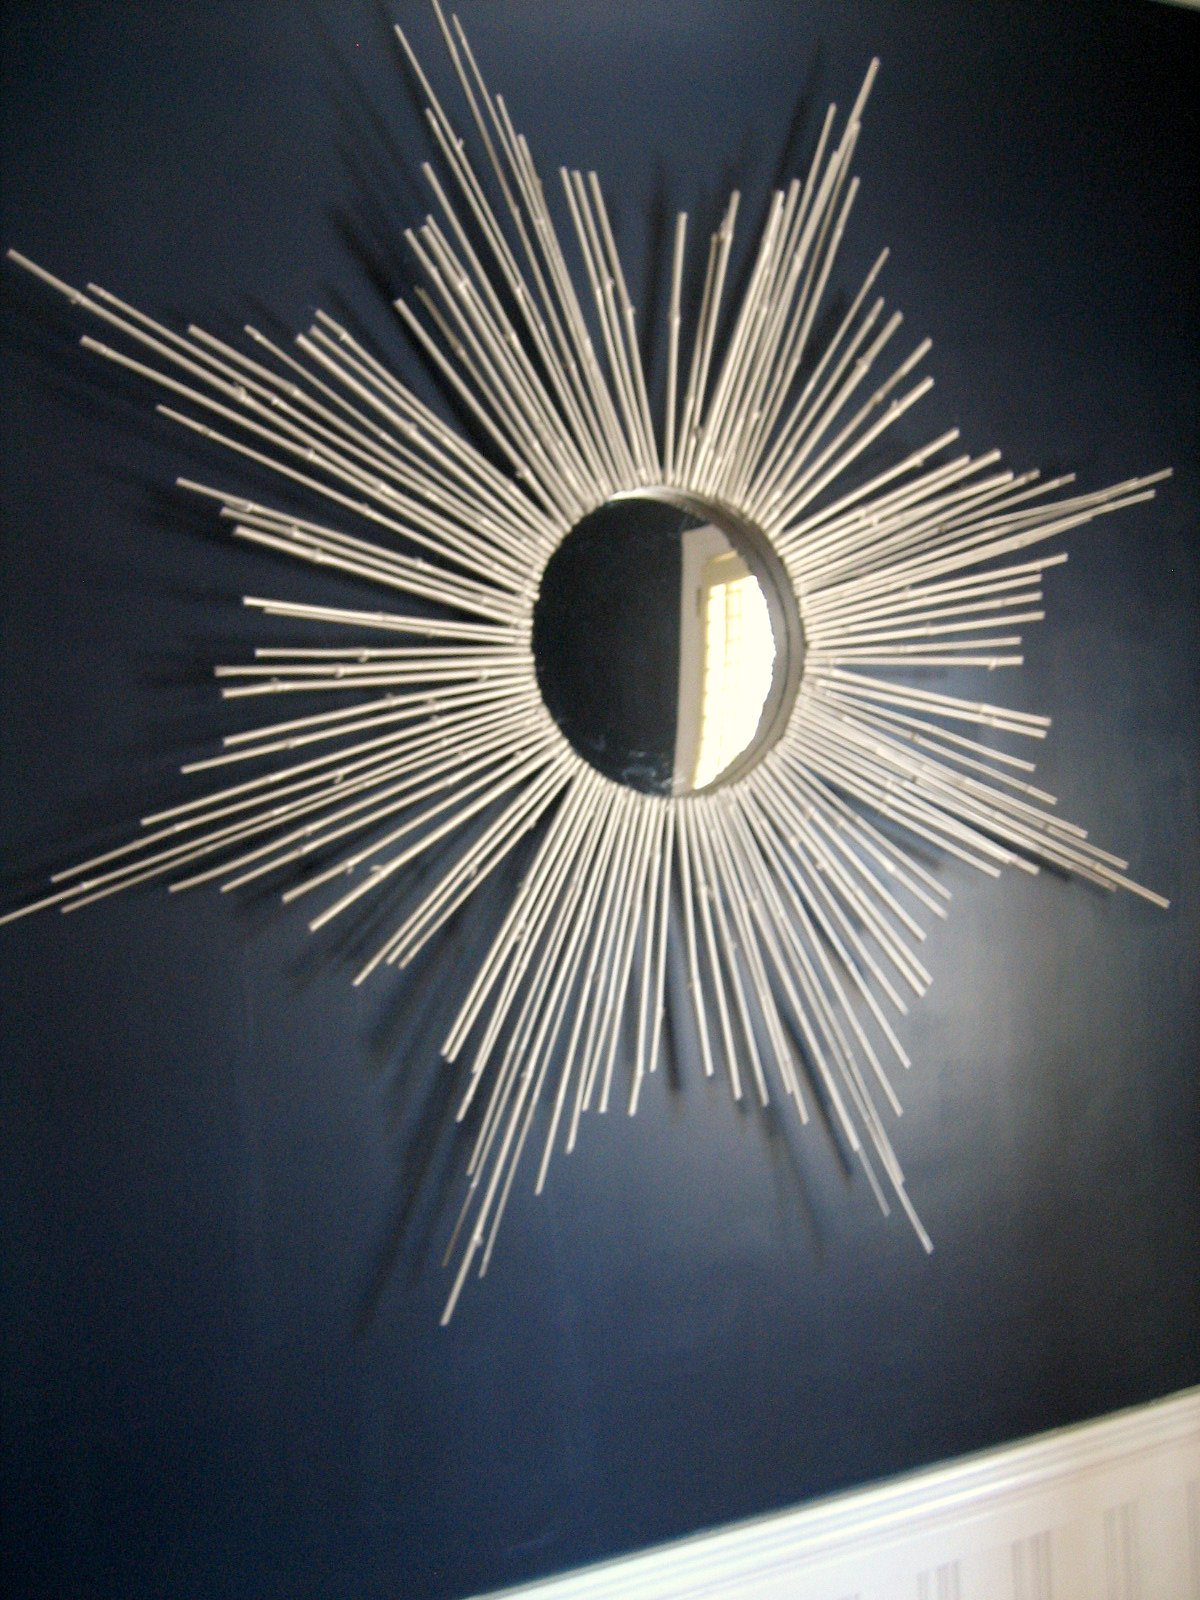 Bamboo Sheets Target Australia Ten June Diy Bamboo Stick Sunburst Mirror Tutorial